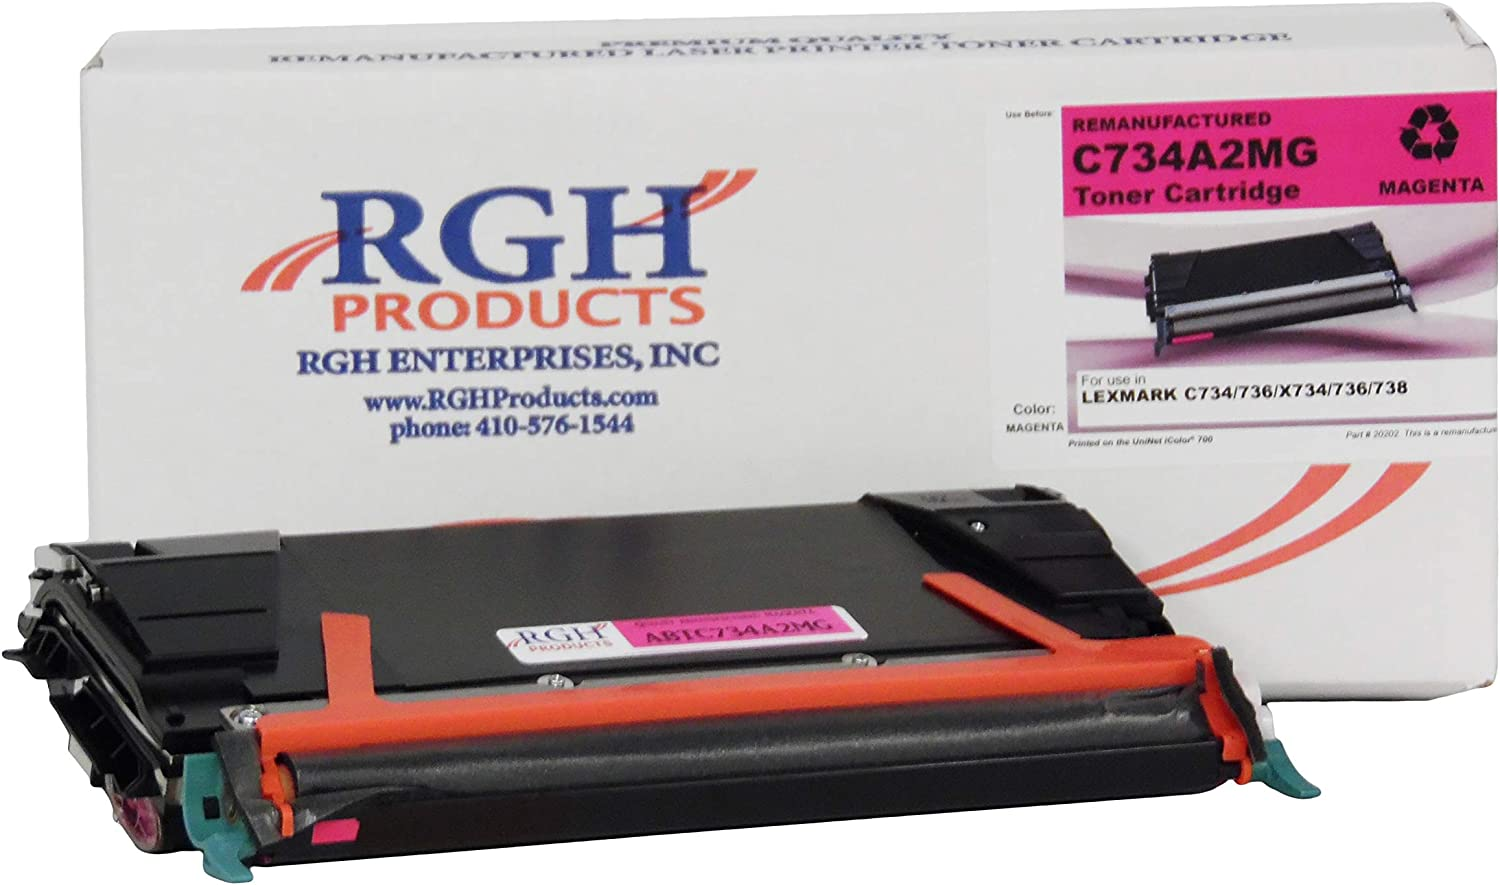 RGH Products Remanufactured ABTC734A2MG Toner Cartridge Tray Replacement for Lexmark C734/C736 Printer Magenta